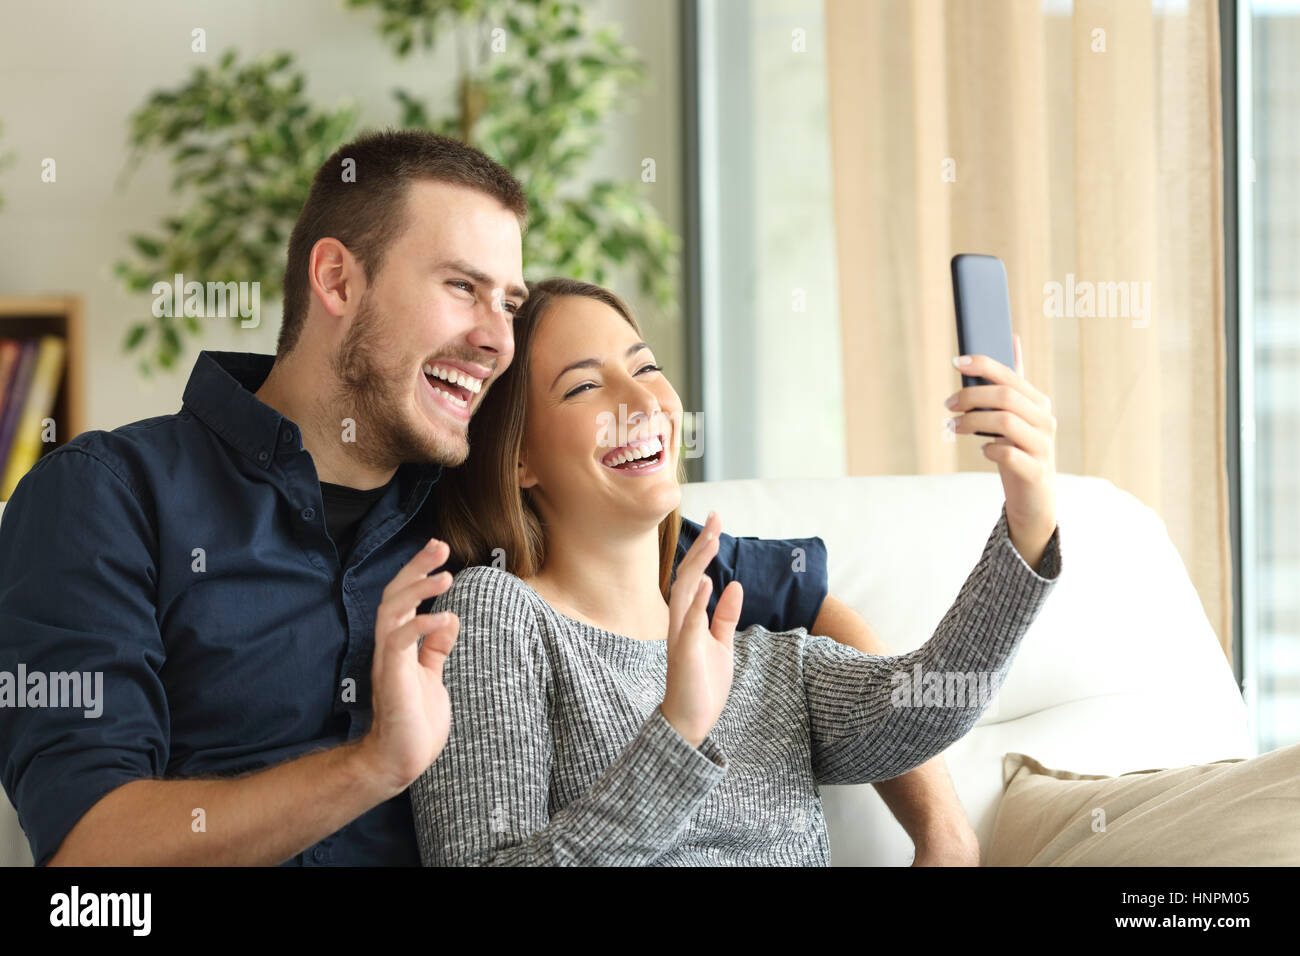 Happy casual couple greeting in a phone video call on line sitting happy casual couple greeting in a phone video call on line sitting on a sofa in the living room at home with a window in the background m4hsunfo